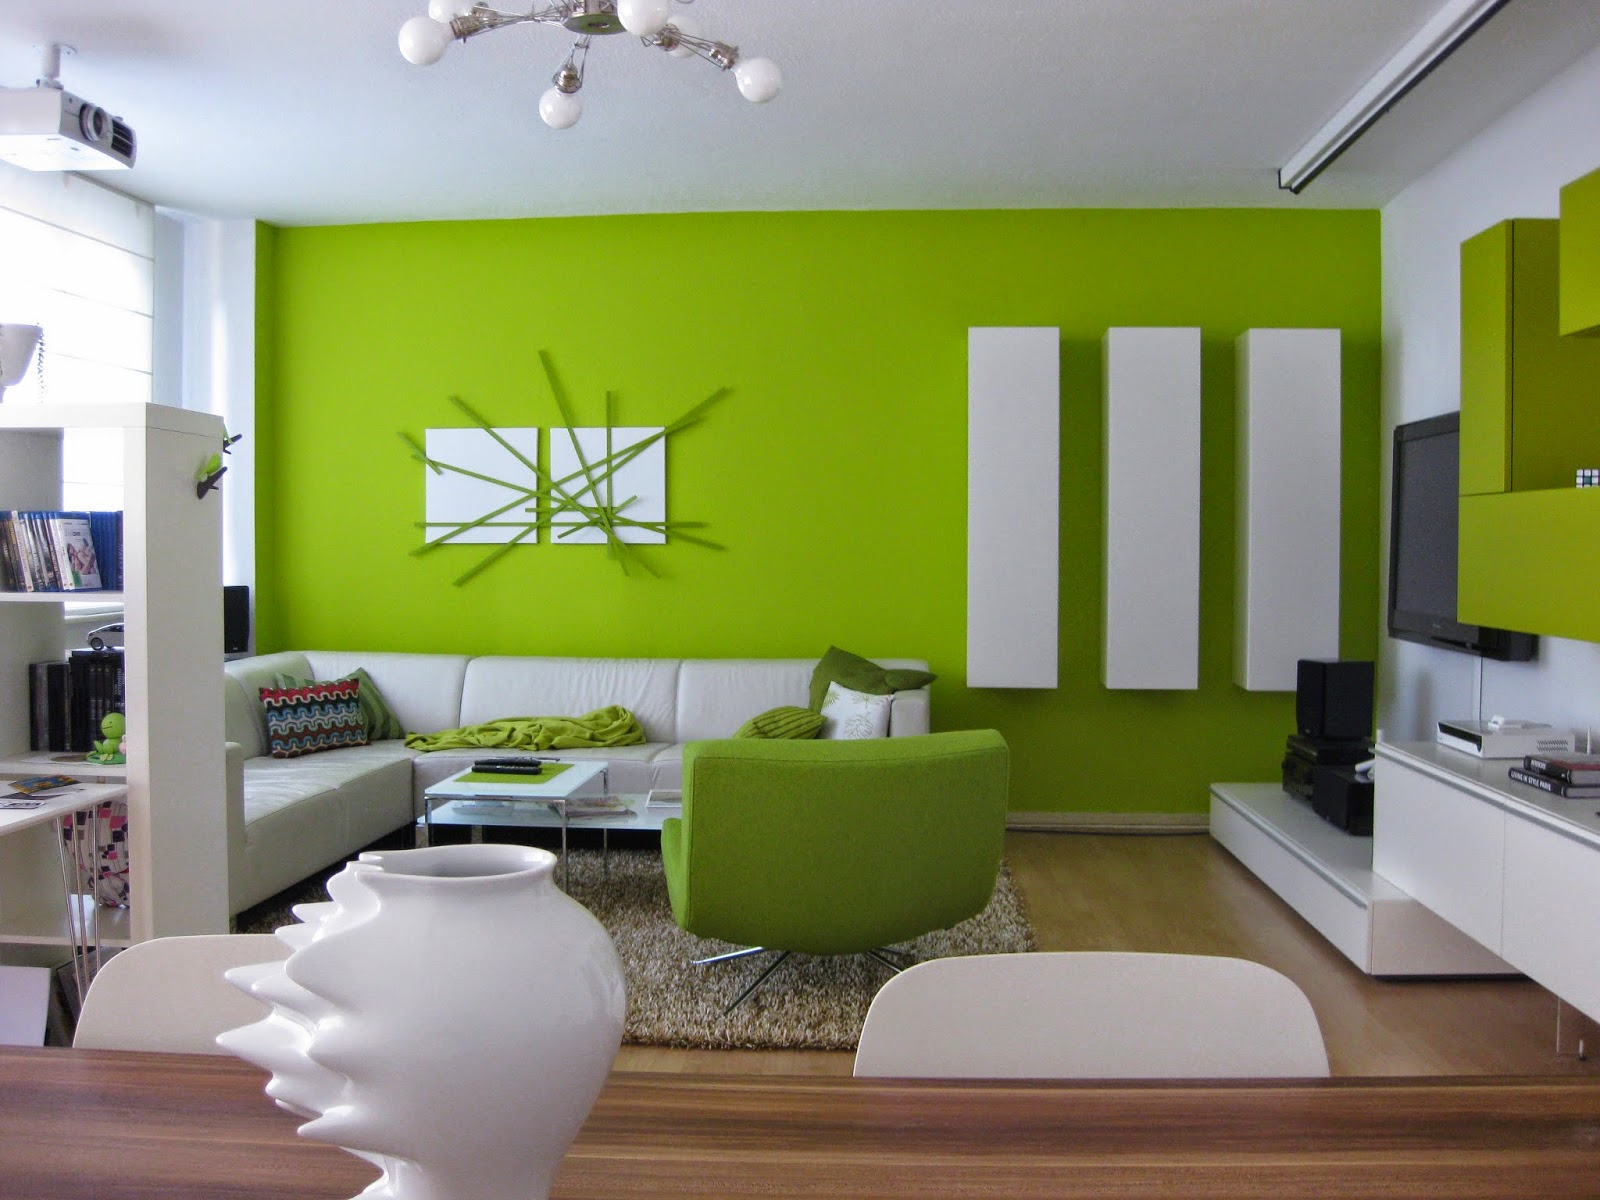 Fotos de sala en color verde salas con estilo for Colores de interiores de casa 2016